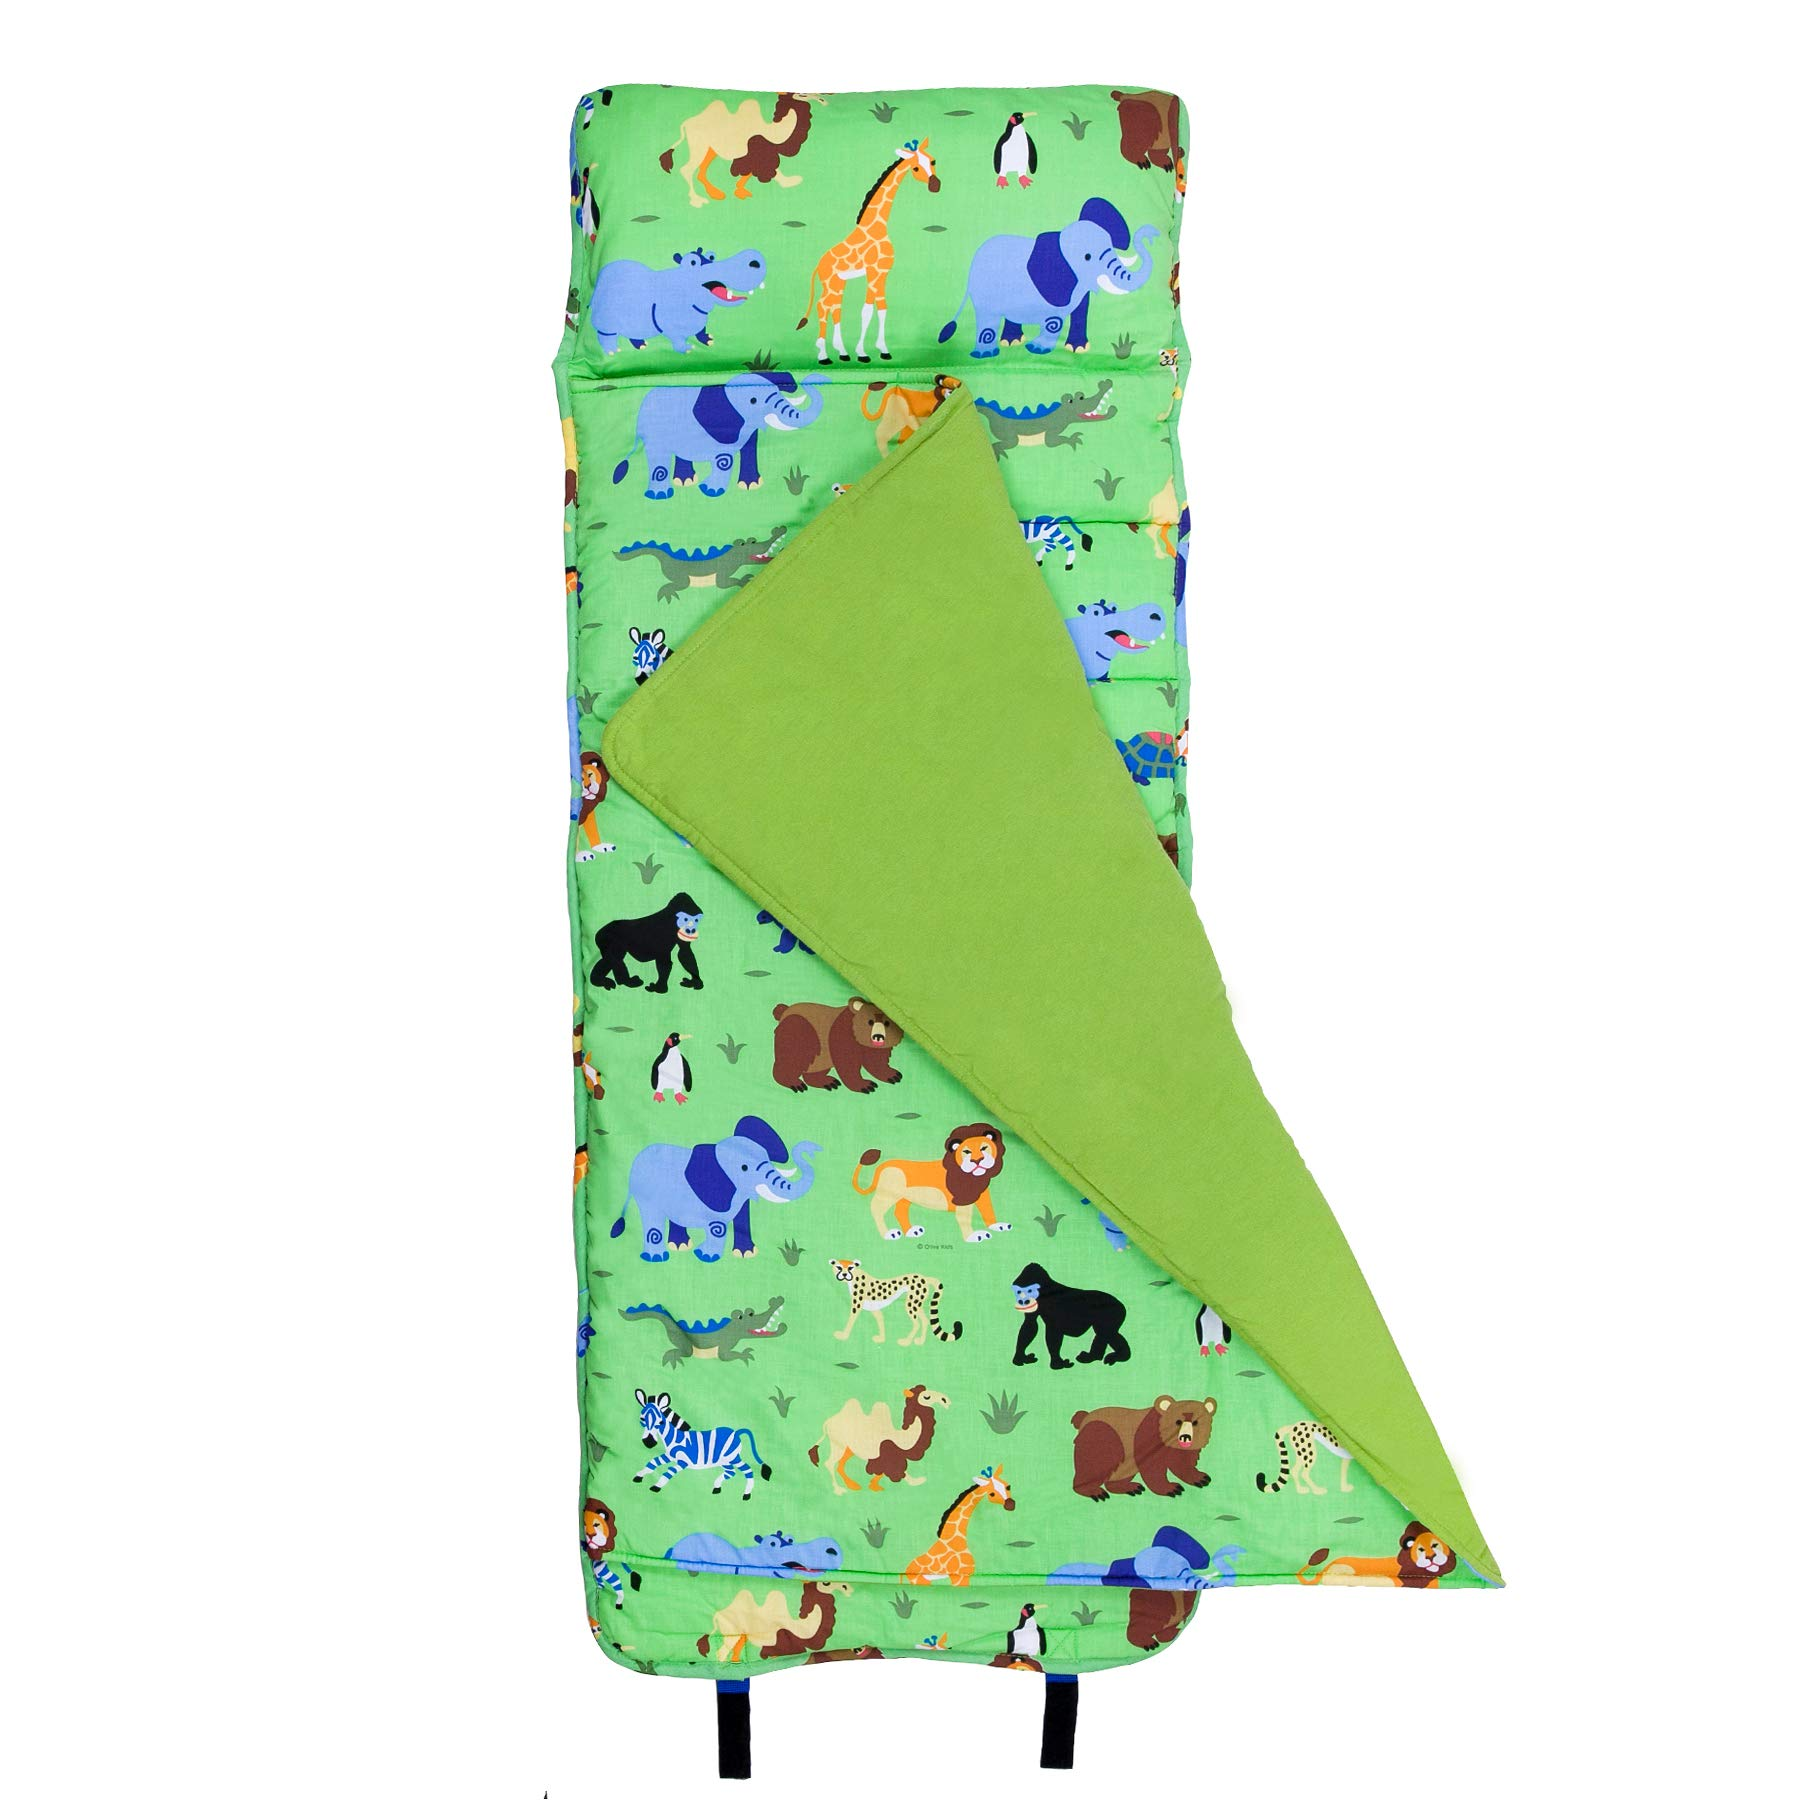 Original Nap Mat Olive Kids by Wildkin Children's Original Nap Mat with Built in Blanket and Pillowcase Pillow Insert Included Premium Cotton and Microfiber Blend Ages 3-7 years Wild Animals